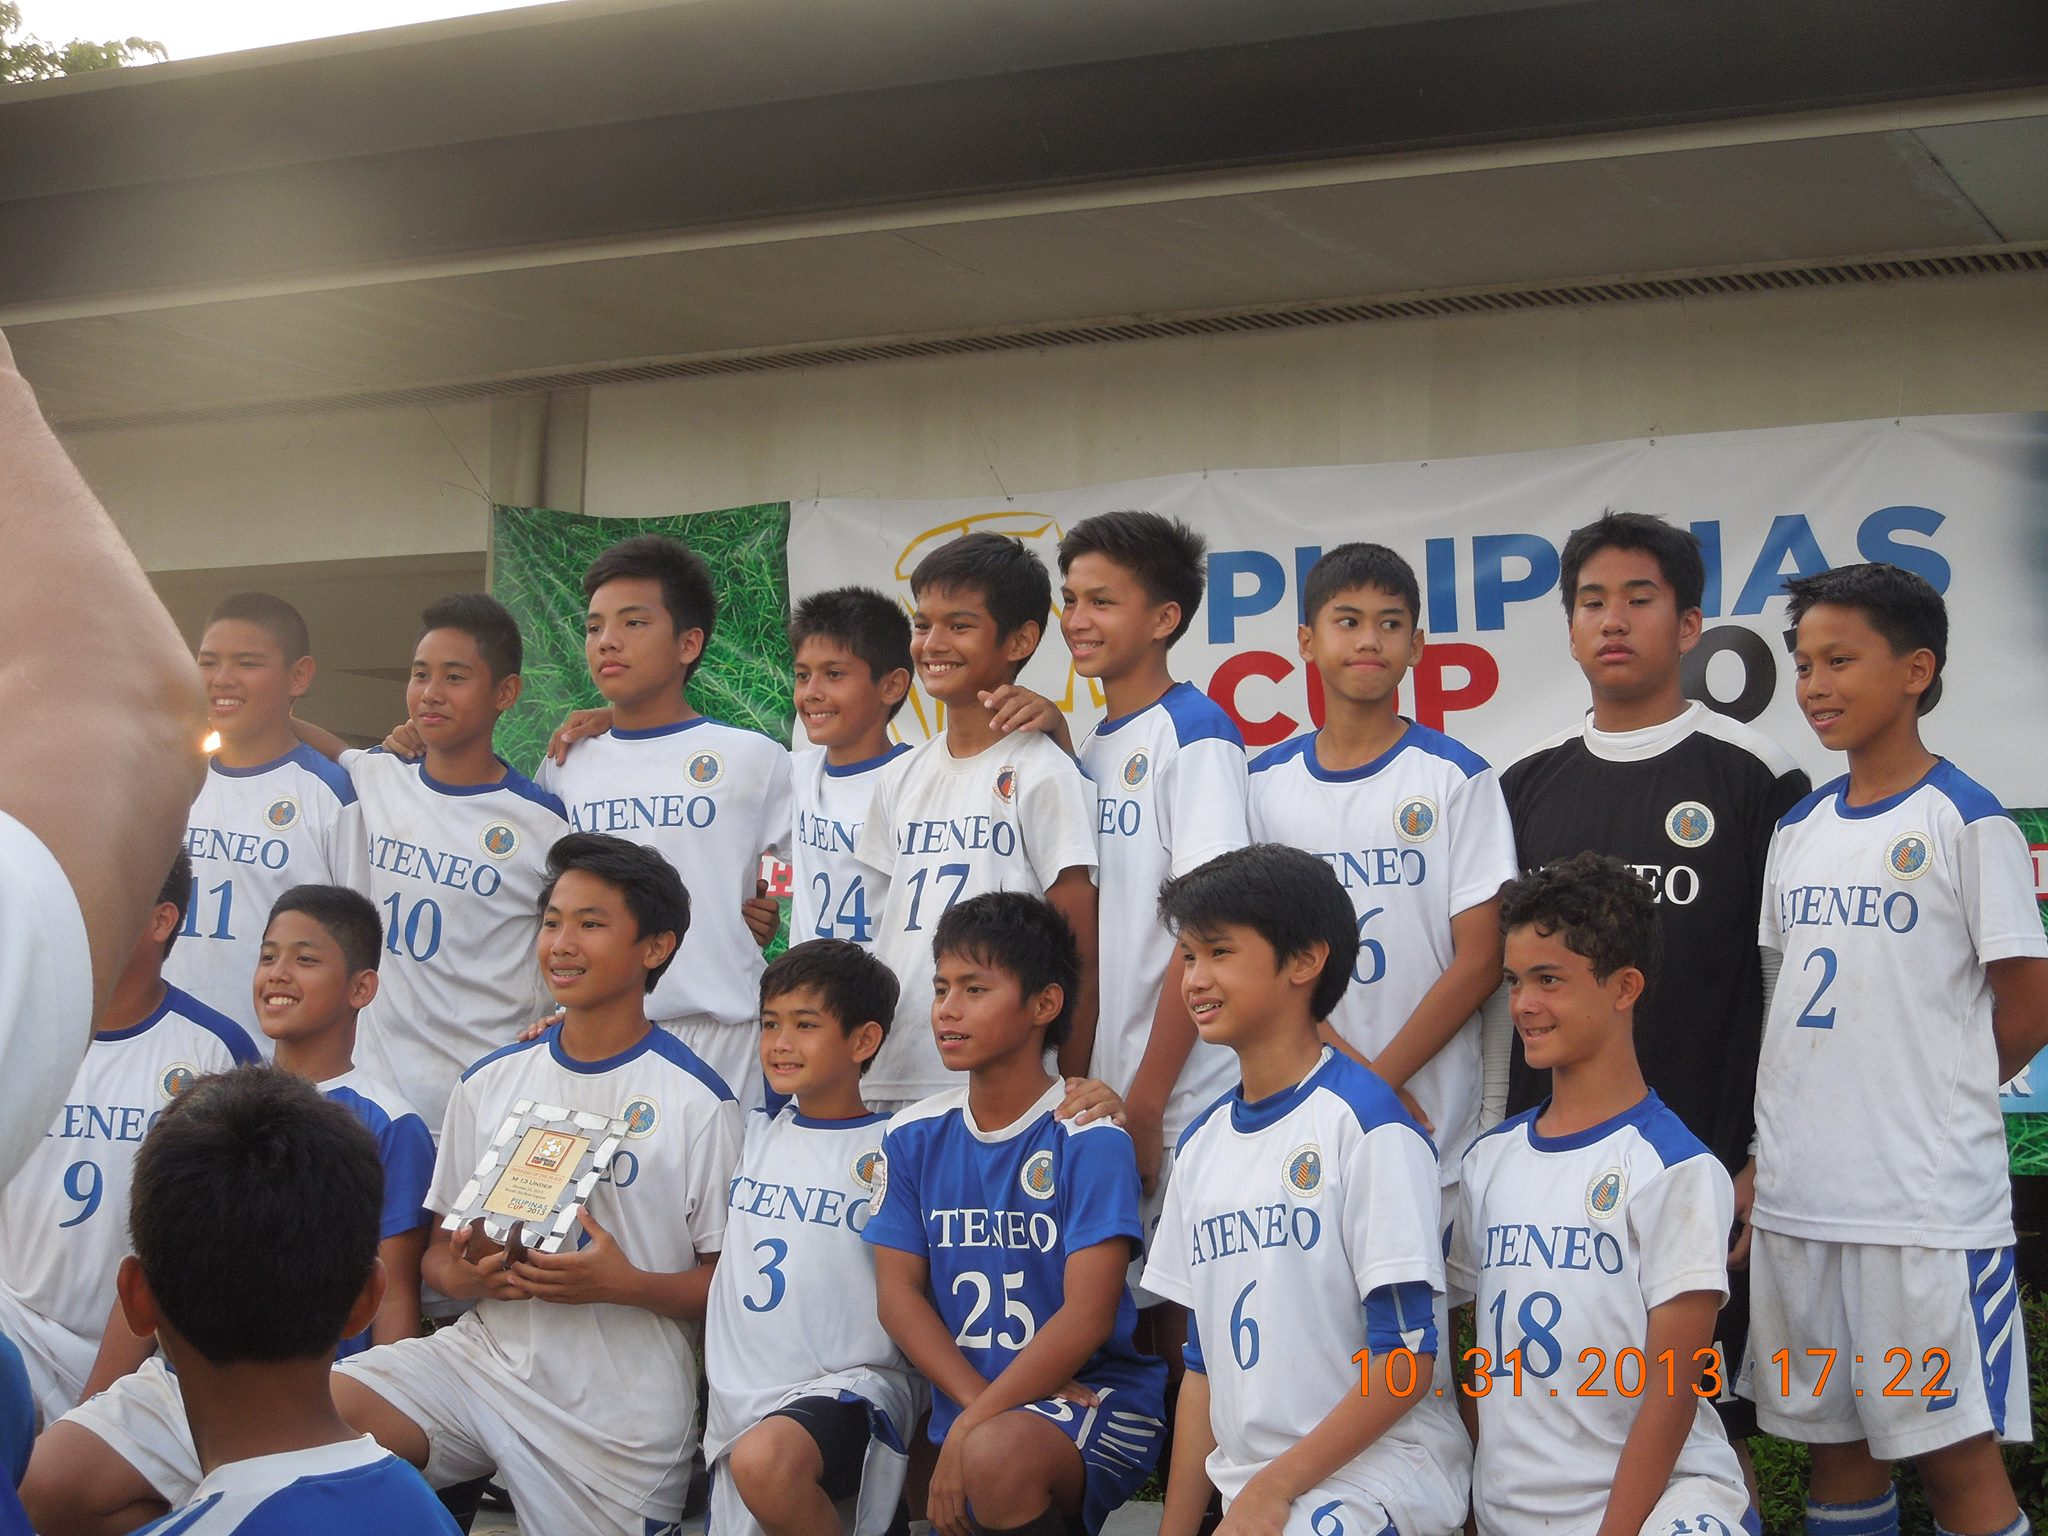 Ateneo football team with Miggy